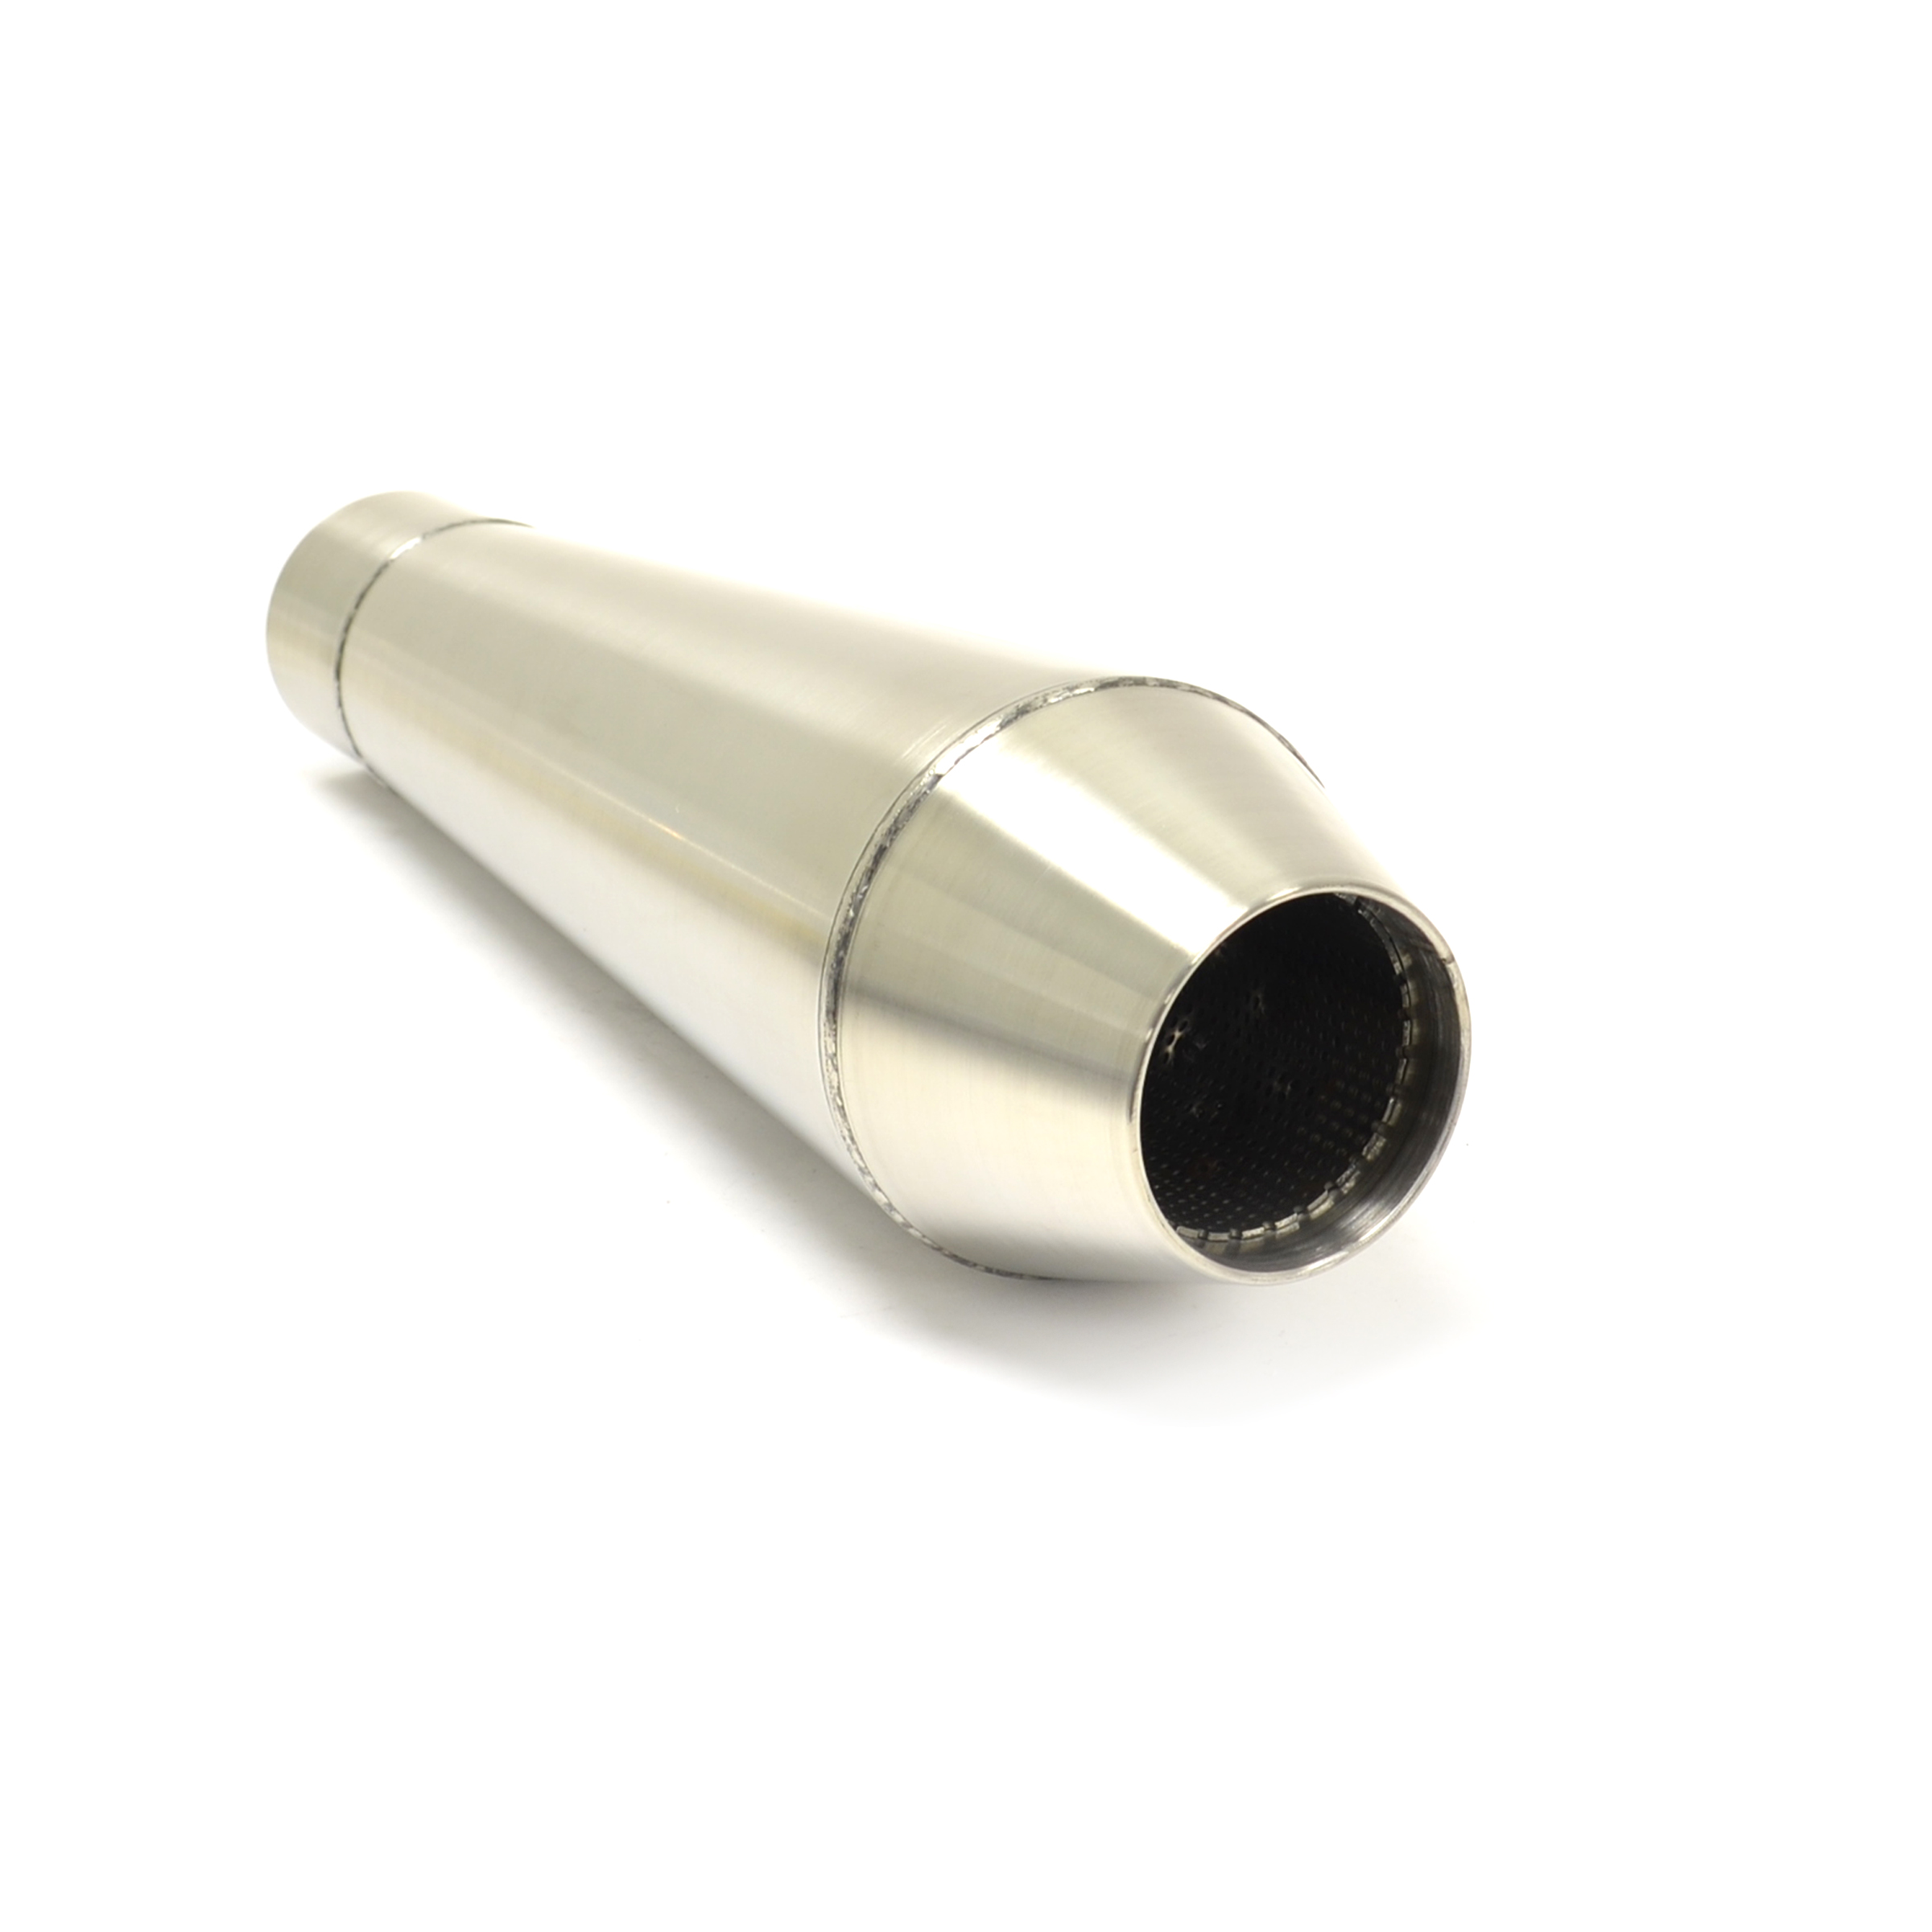 Quot performance steel core muffler shorty reverse cone